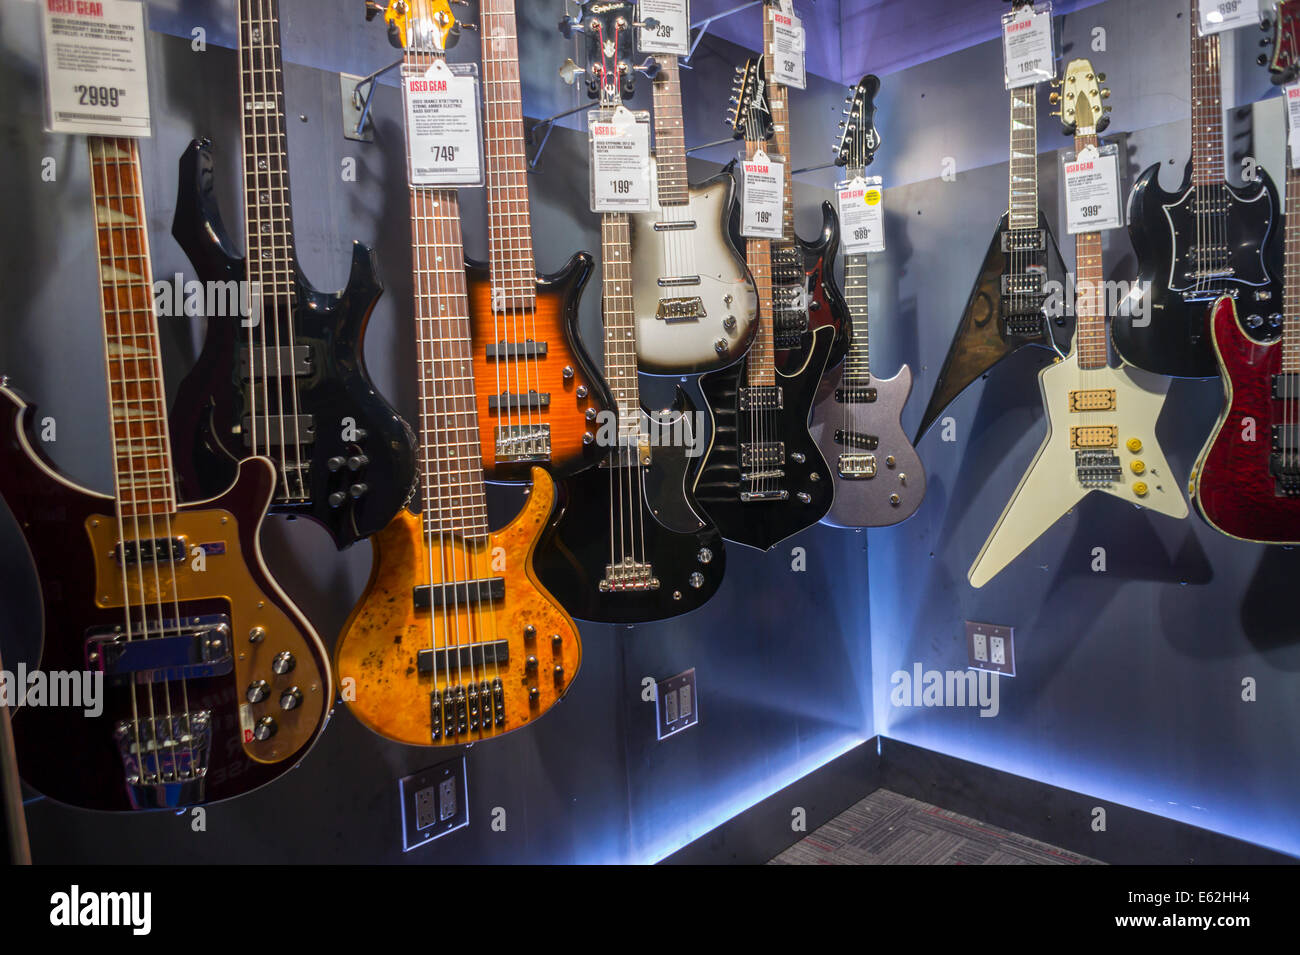 Vintage electric guitars at the newly opened Guitar Center store in Times  Square in New York